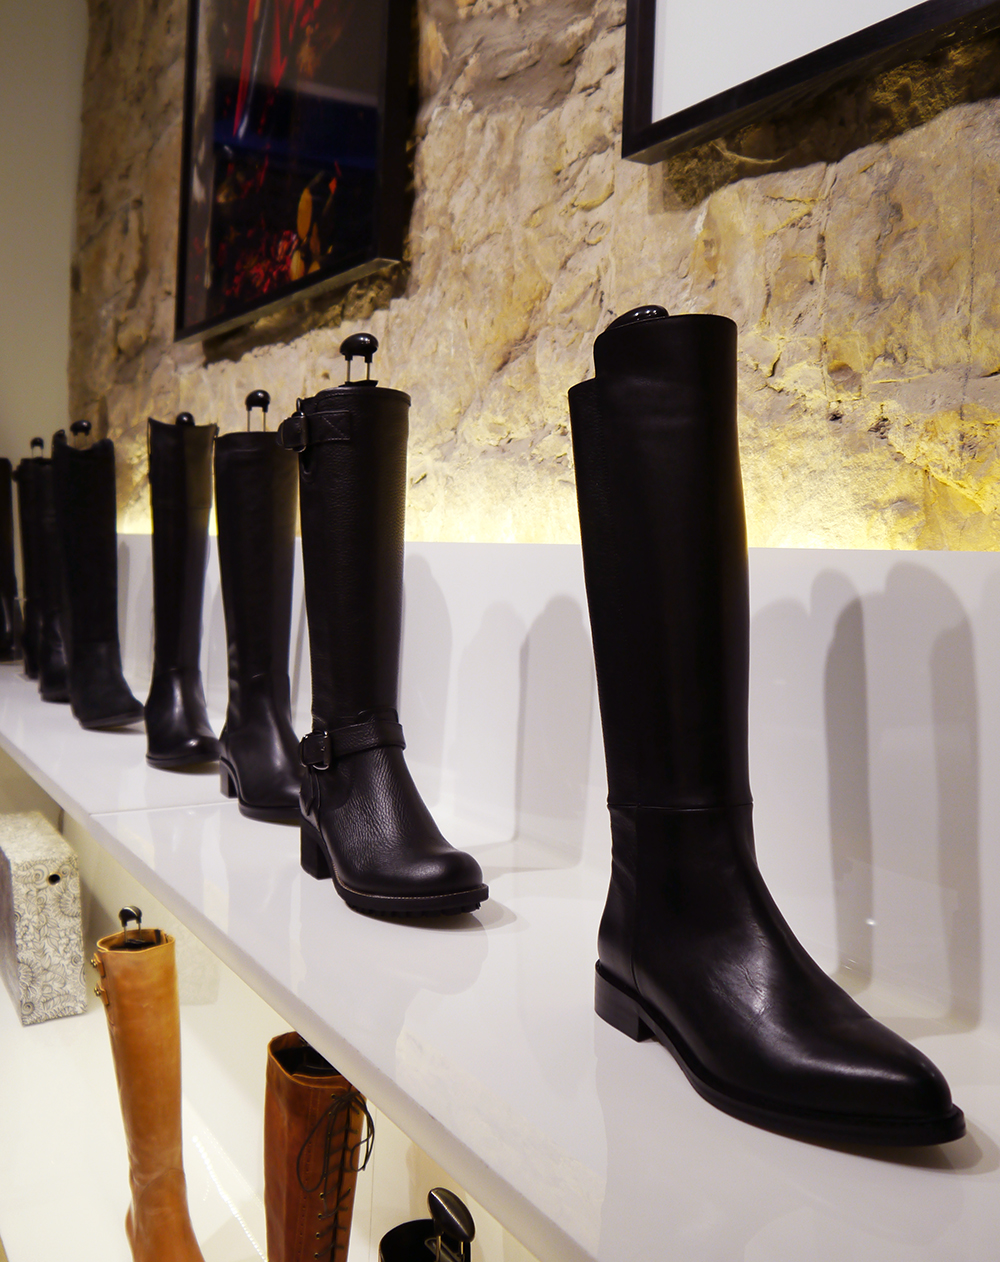 Ted and Muffy, AW 2015, fairytale fitters, Edinburgh boots, over the knee suede boots, blogger event, Scottish bloggers, Huntsmadn boot, Midnight boot, Artemis boot